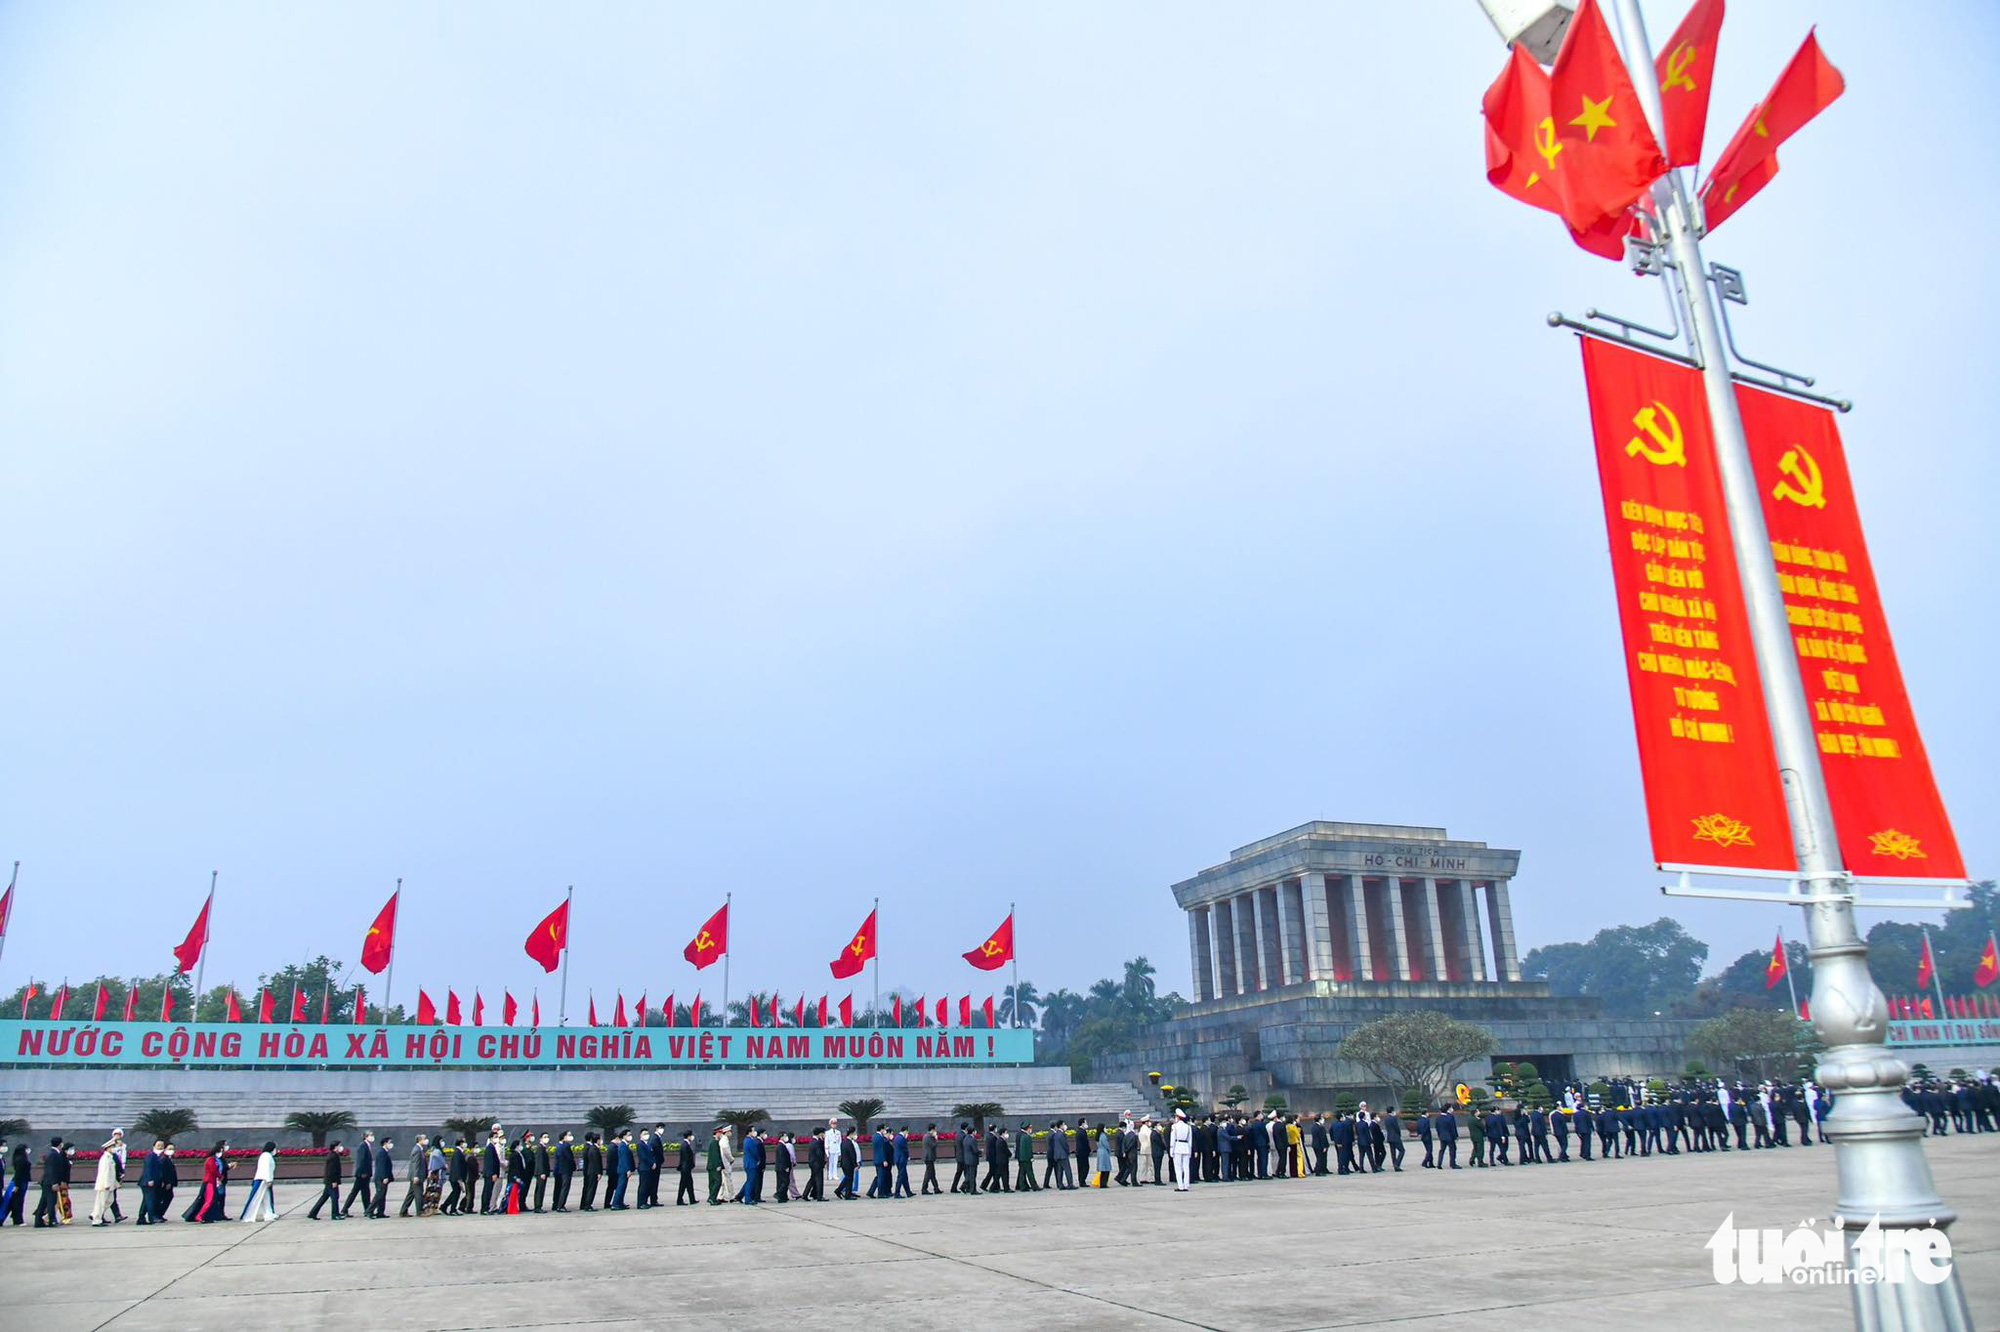 High-ranking officials pay tribute at the Ho Chi Minh Mausoleum in Hanoi, January 25, 2021. Photo: Quang Minh / Tuoi Tre